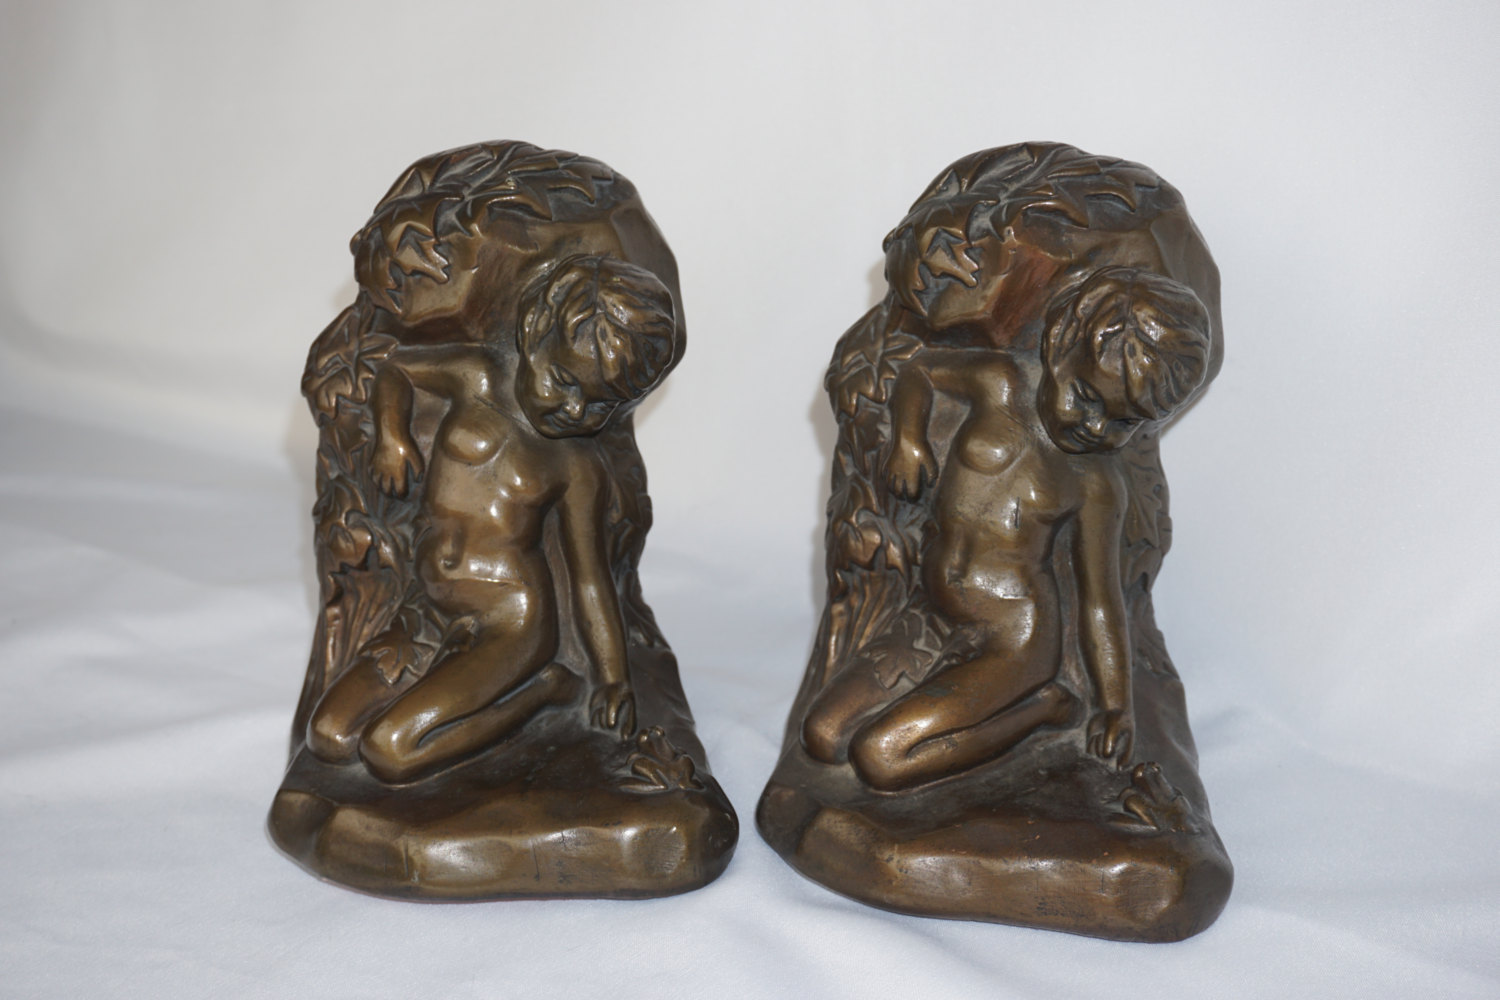 Armour bronze co clad boy with frog bookends 1920s signed s morani dealer of antiques - Armor bronze bookends ...